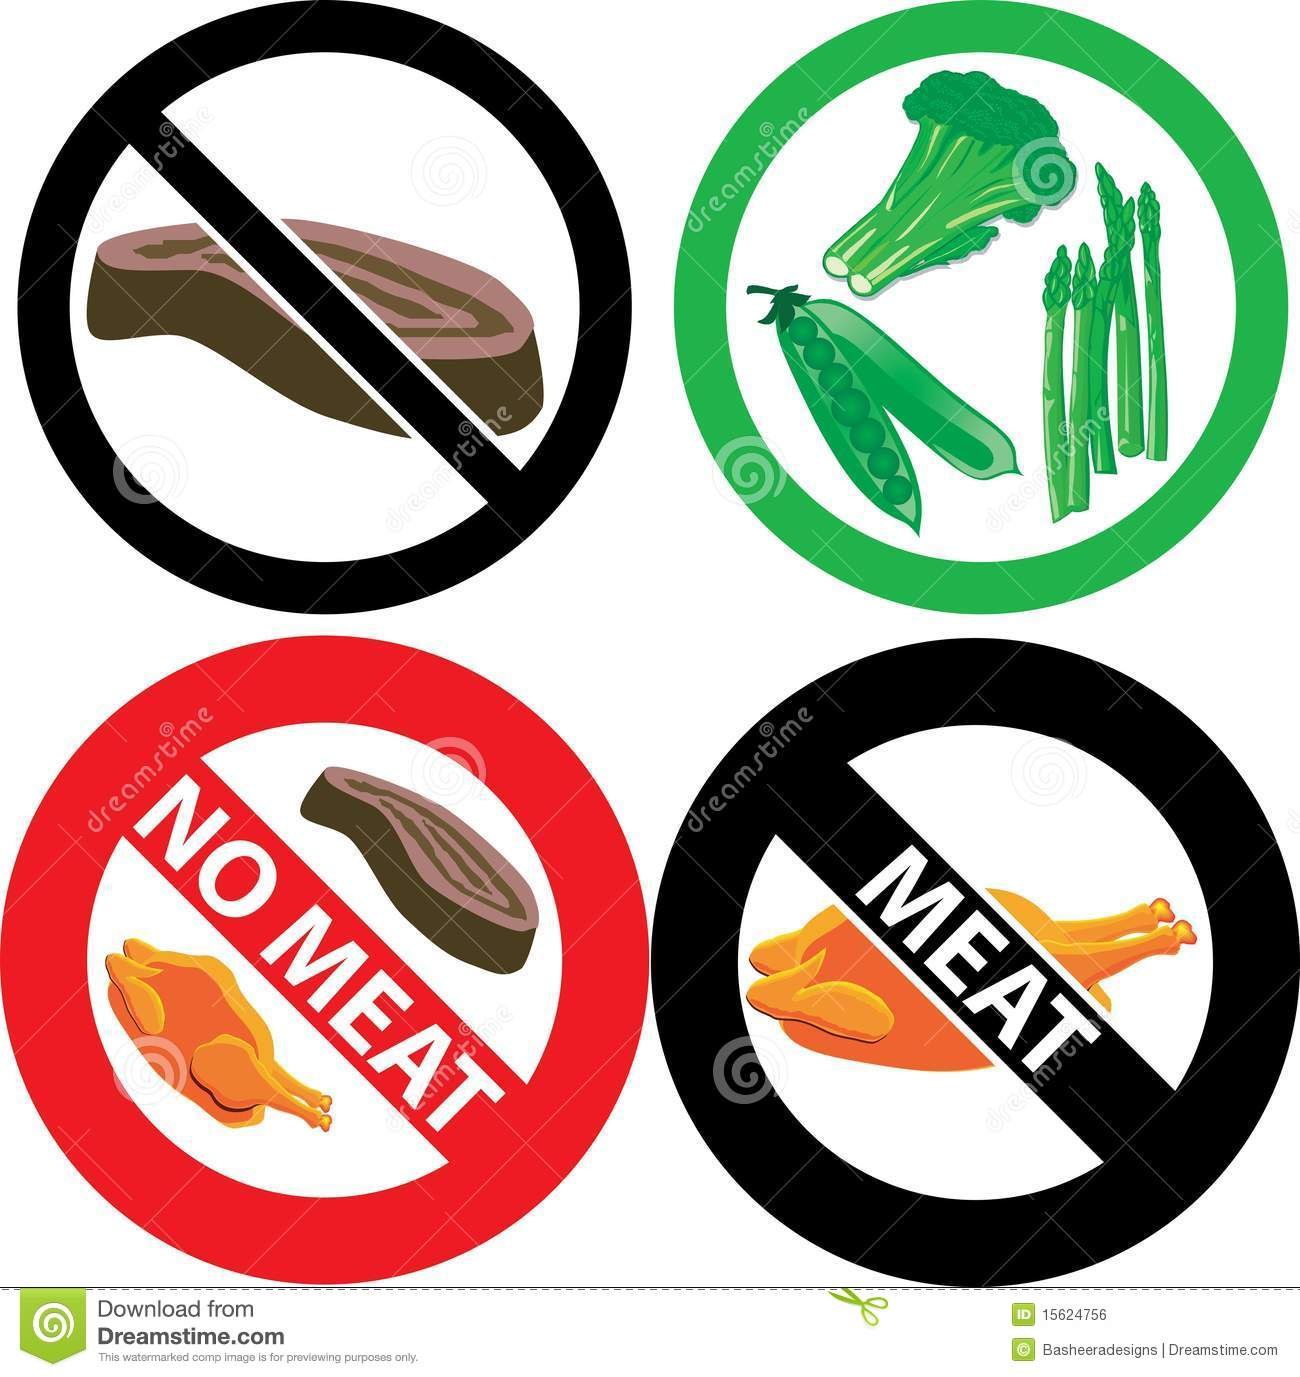 No meat sign stock vector illustration of chicken black 15624756 no meat sign buycottarizona Choice Image